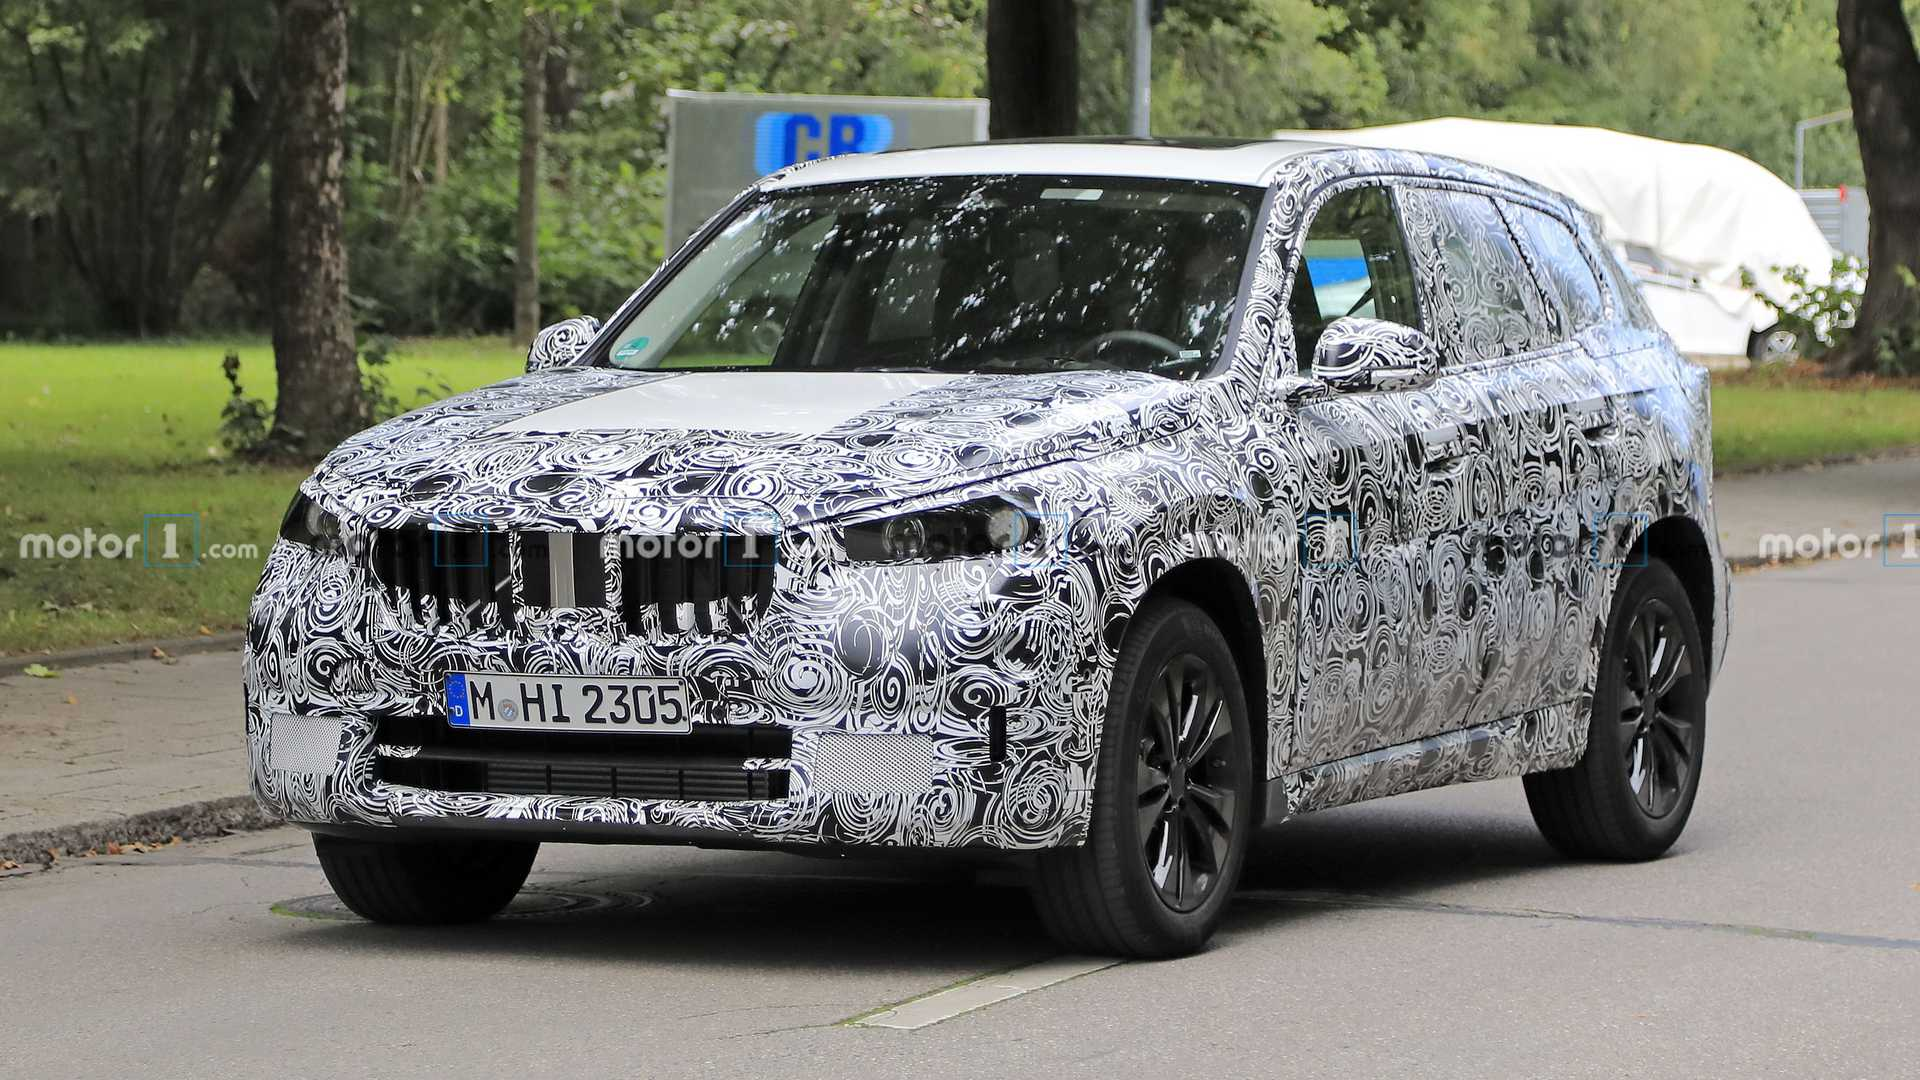 https://cdn.motor1.com/images/mgl/ZXnLK/s6/2022-bmw-x1-spy-photo-front-three-quarters.jpg